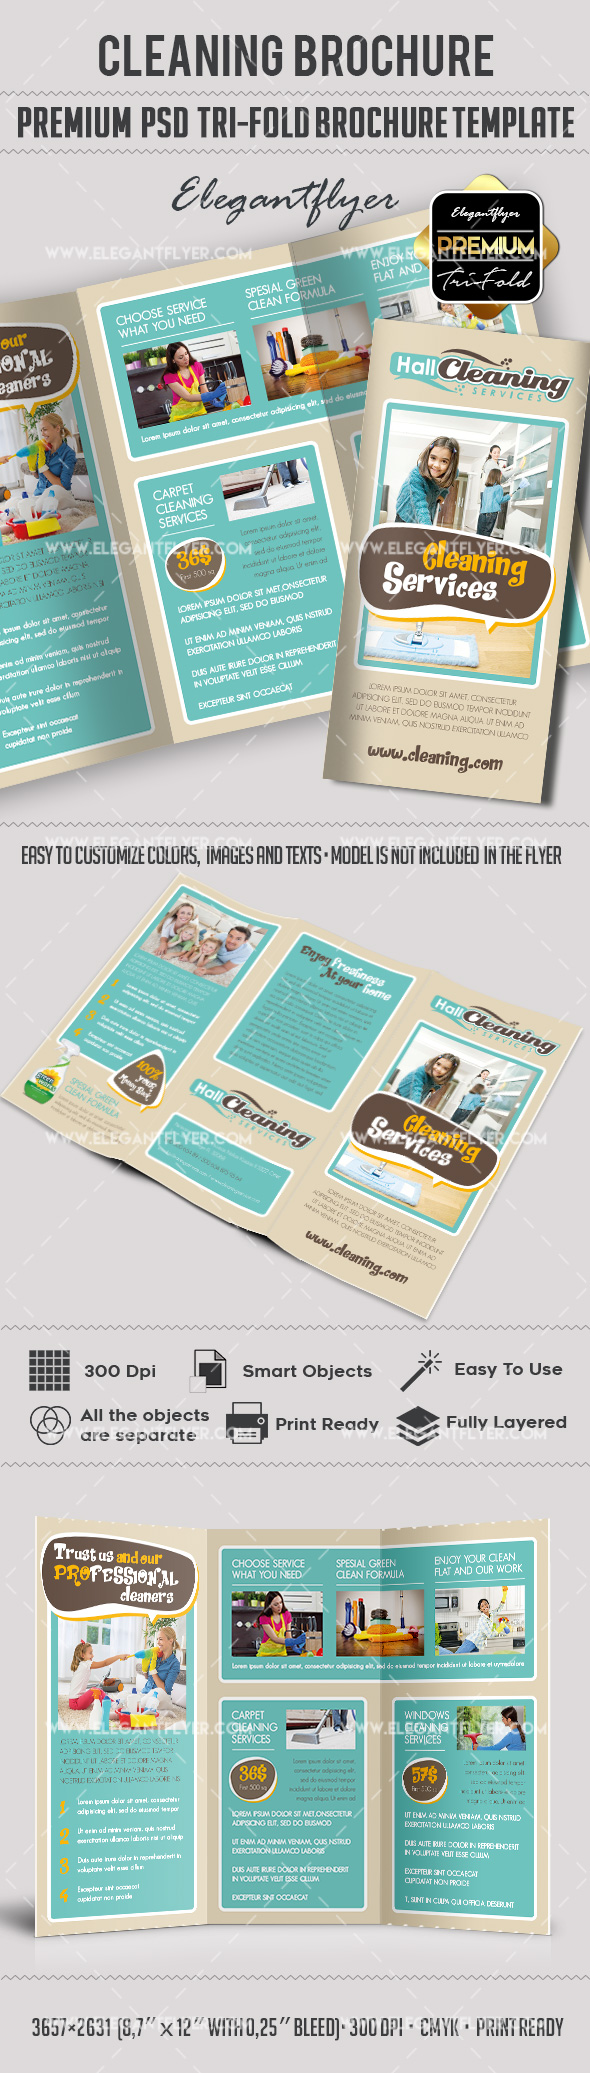 Psd brochure for cleaning services by elegantflyer for 2 fold brochure template psd